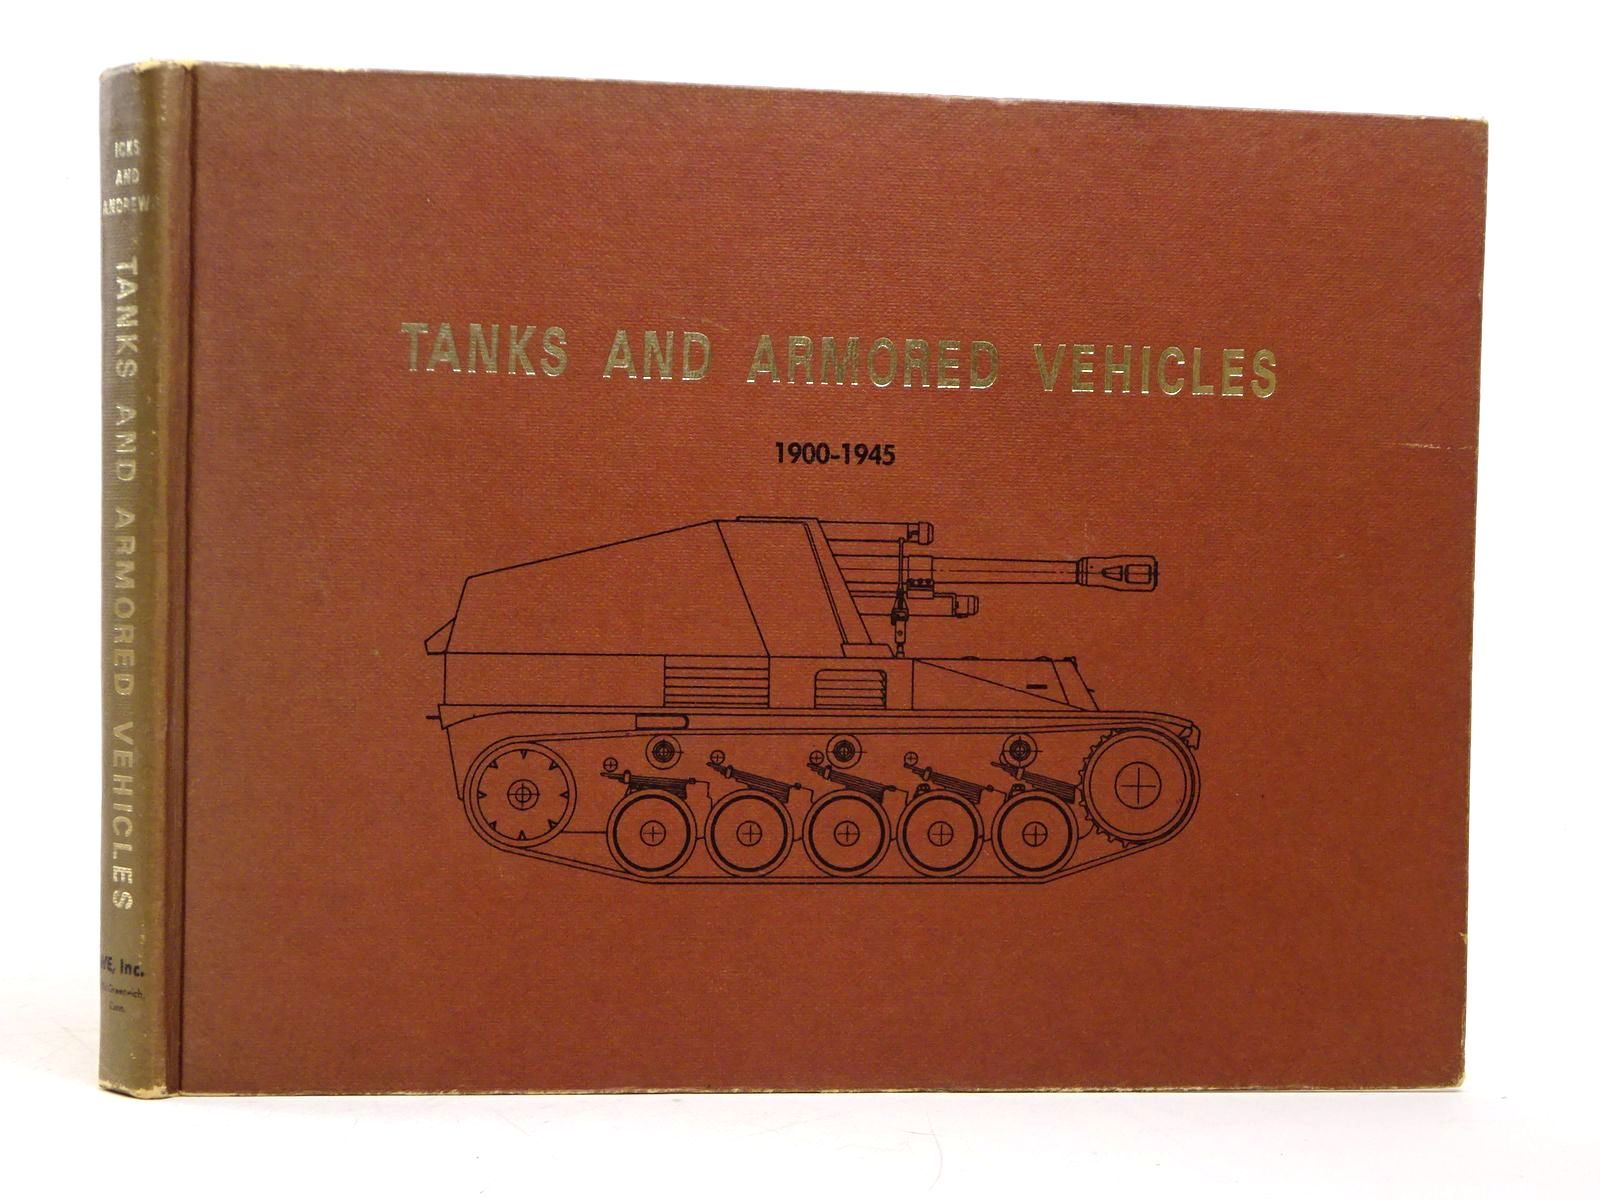 Photo of TANKS AND ARMORED VEHICLES 1900-1945 written by Icks, Robert J. published by WE Inc. (STOCK CODE: 1817818)  for sale by Stella & Rose's Books